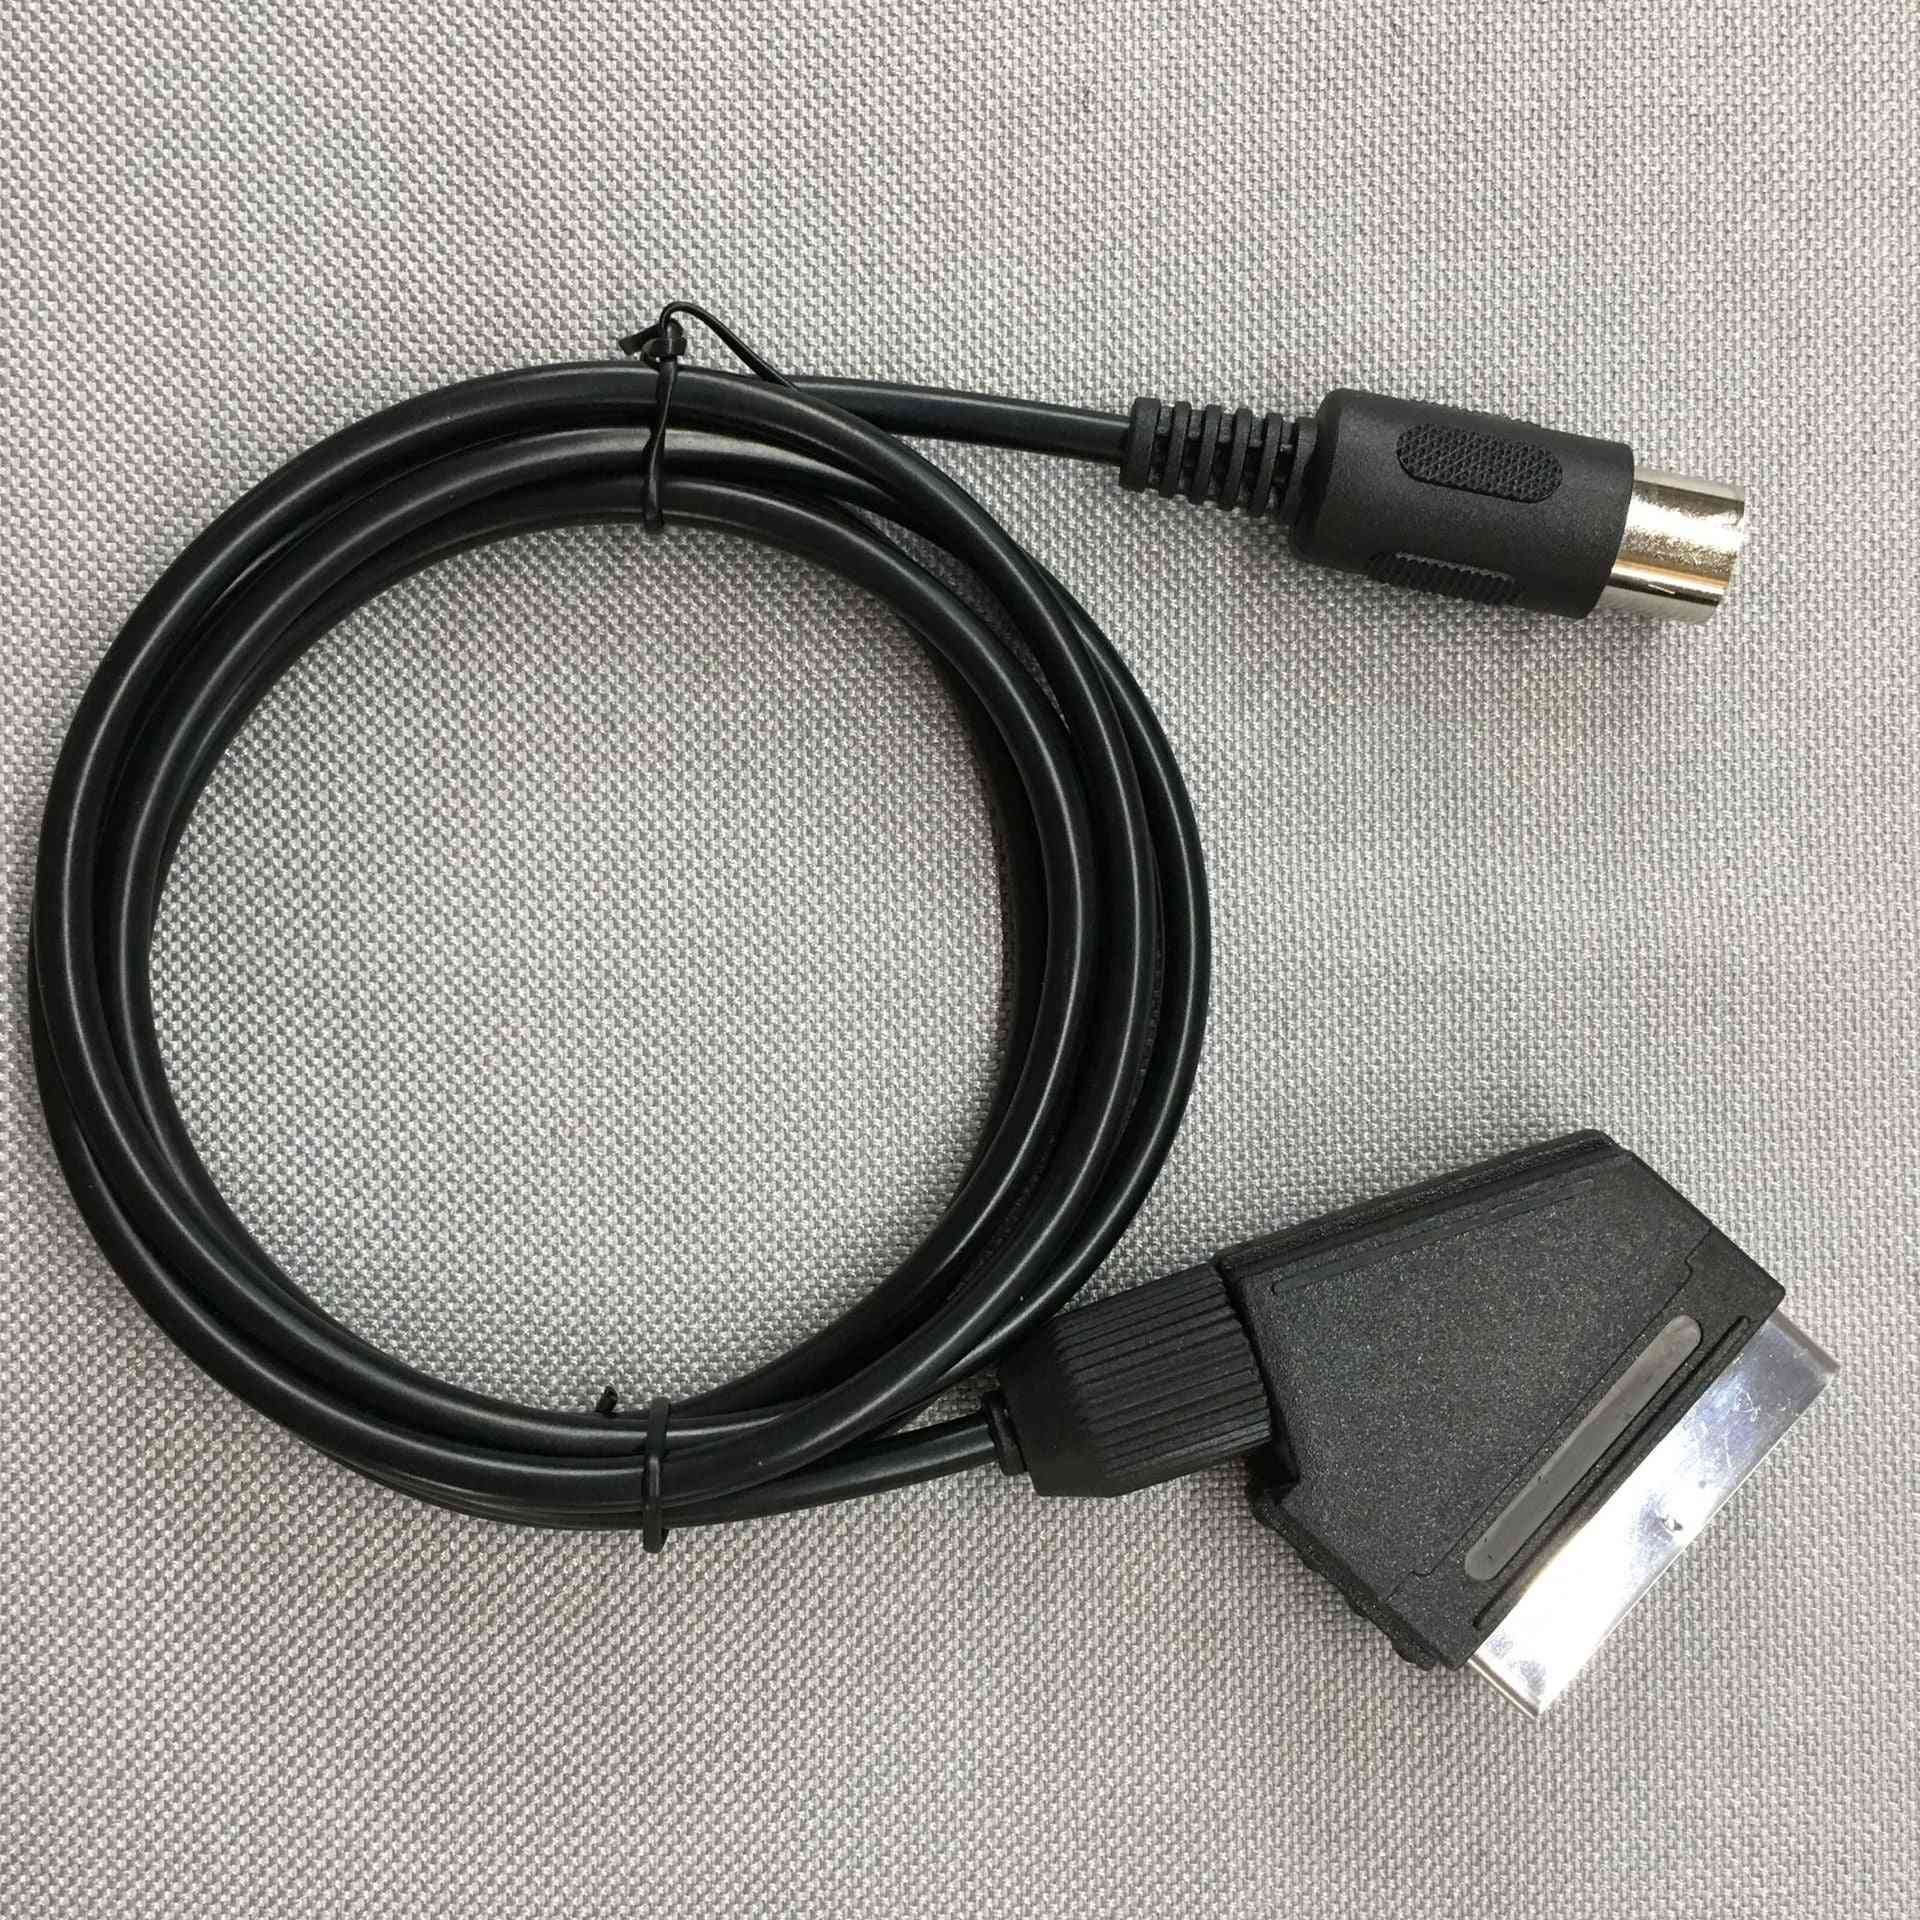 Replacement V-pin Scart Cable For Sega - Megadrive Genesis Master System